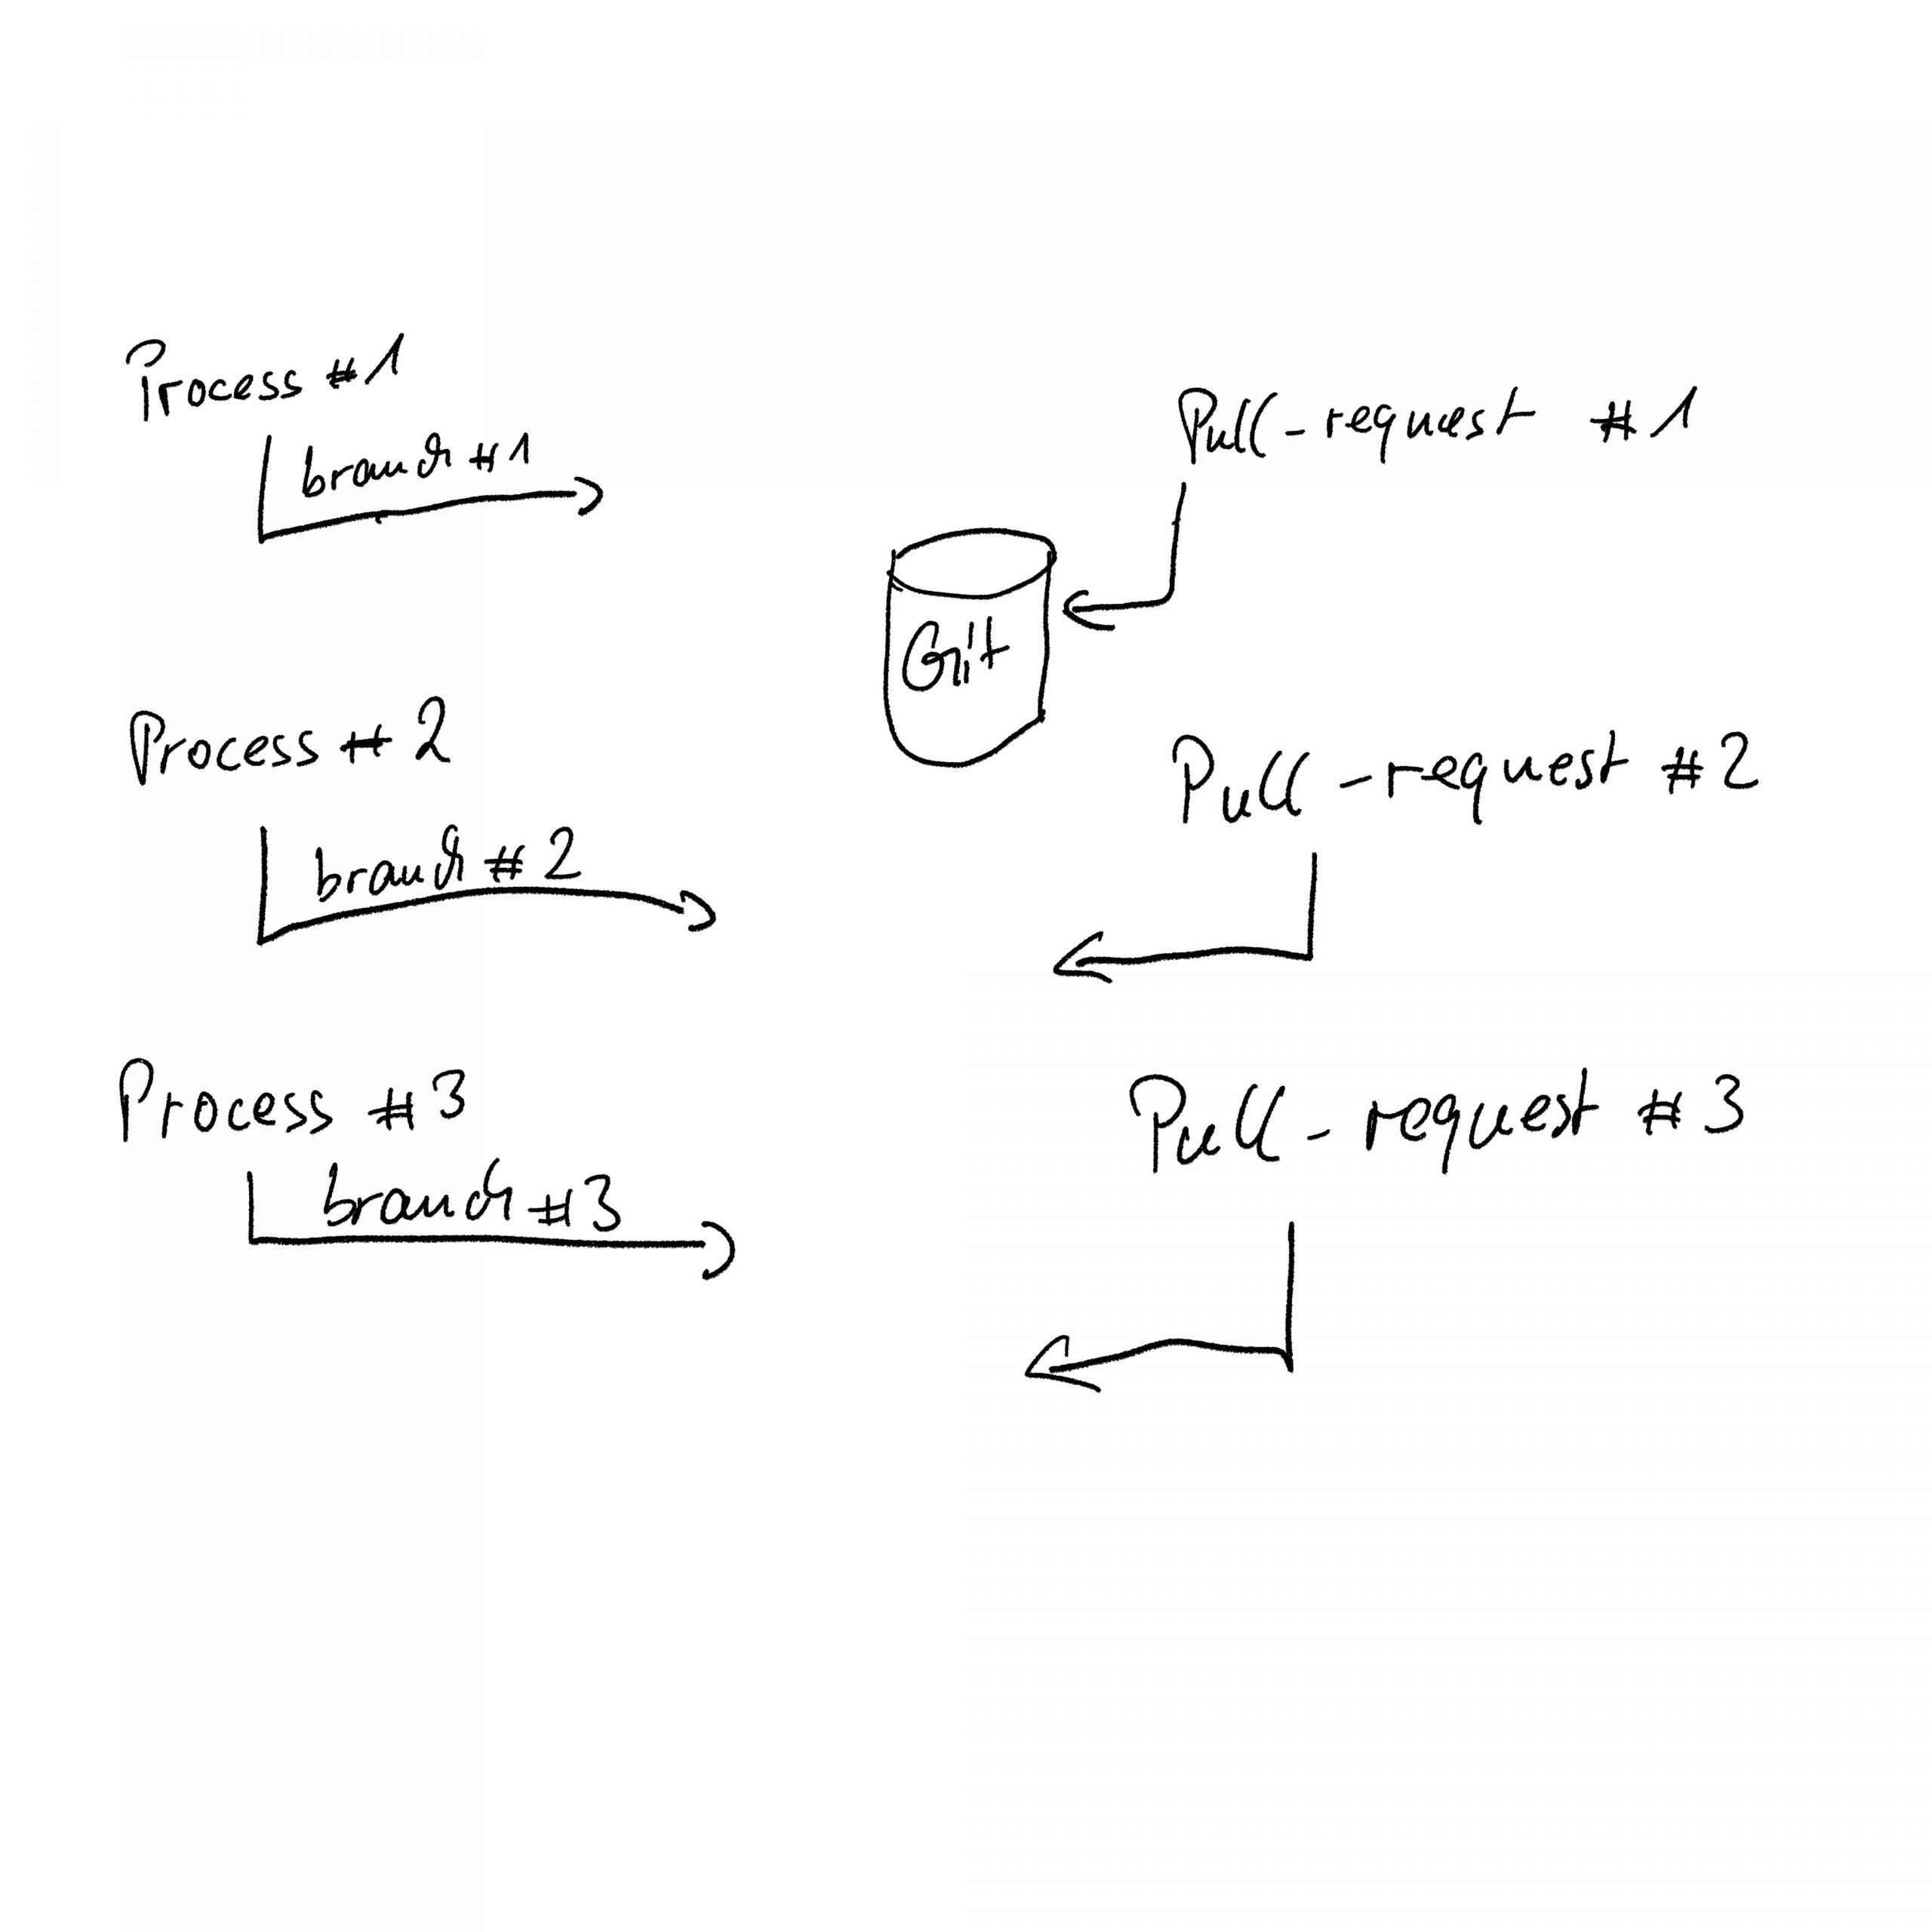 Image 15: Possible merge conflicts  with automatic concurrent pull requests